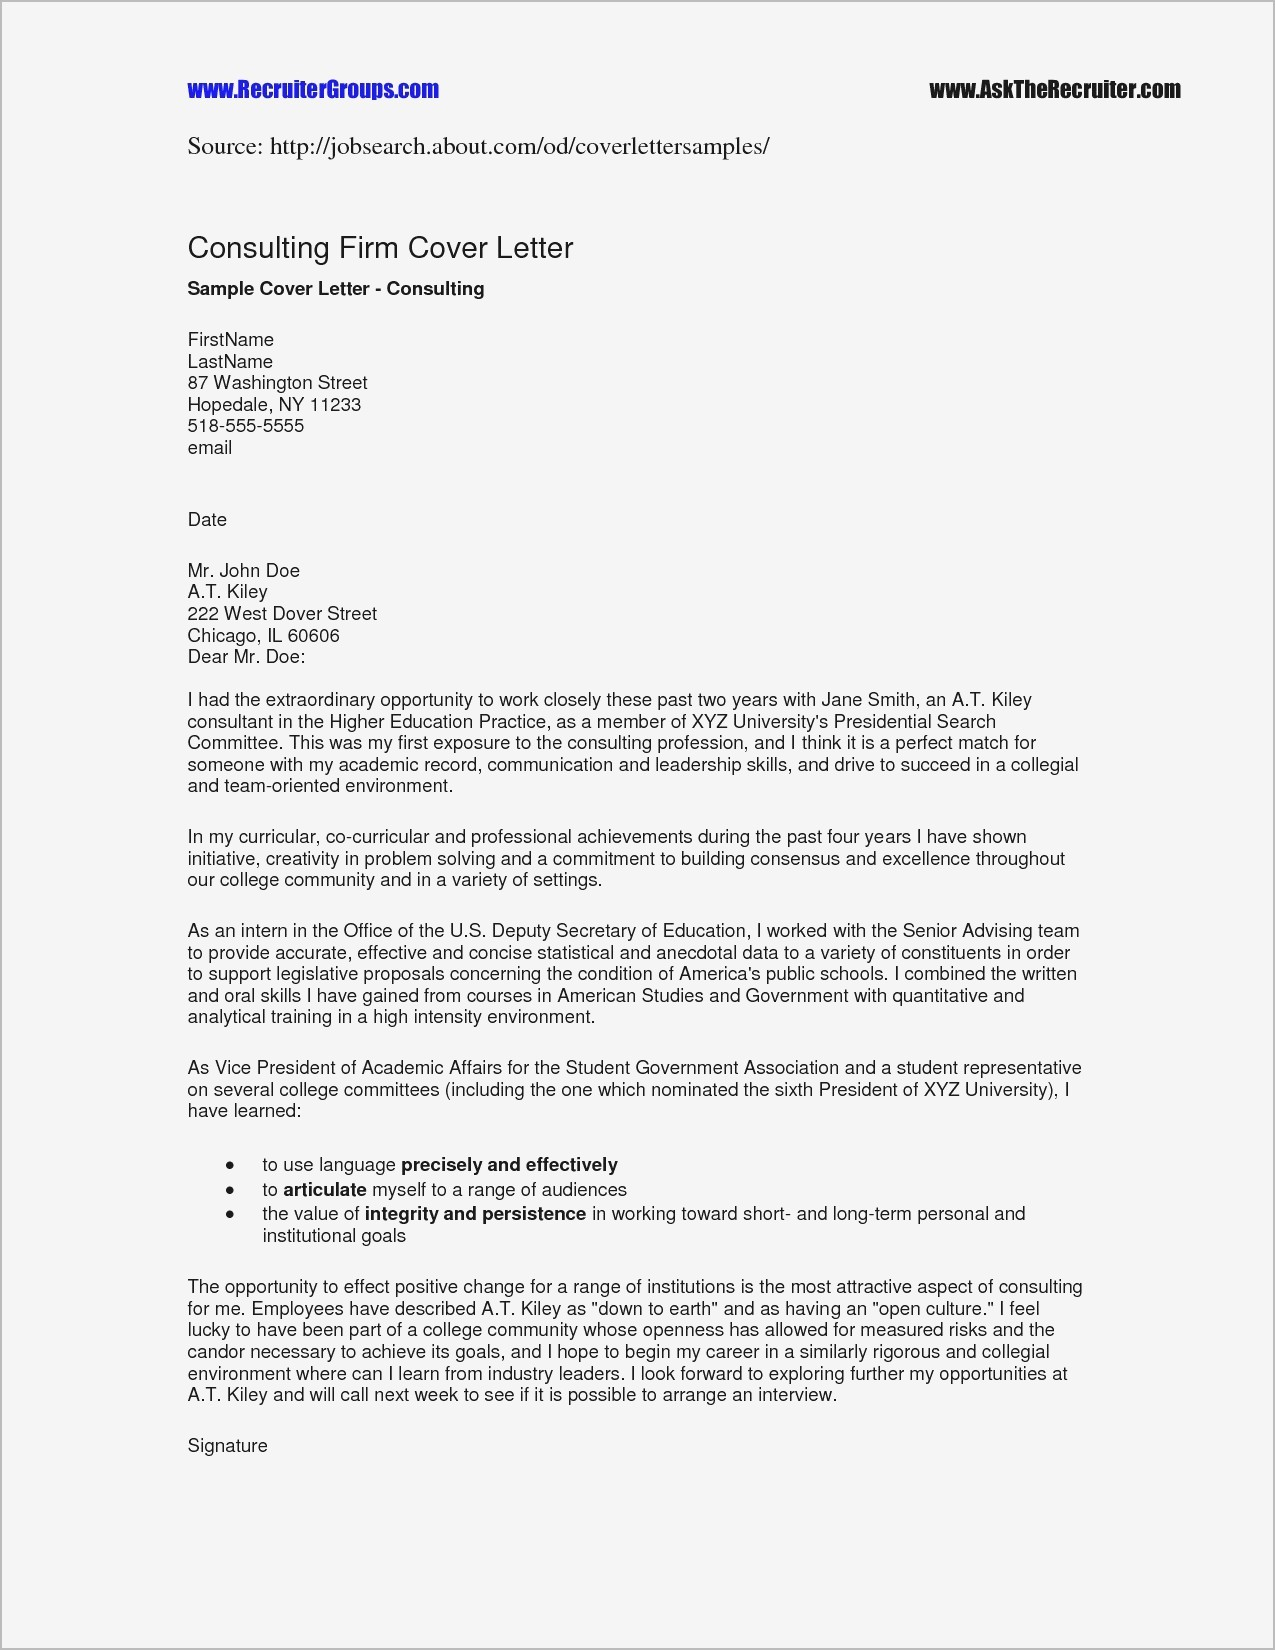 Letter Of Engagement Template Consultant - formal Letter format Muet Fresh 43 Management Consulting Proposal